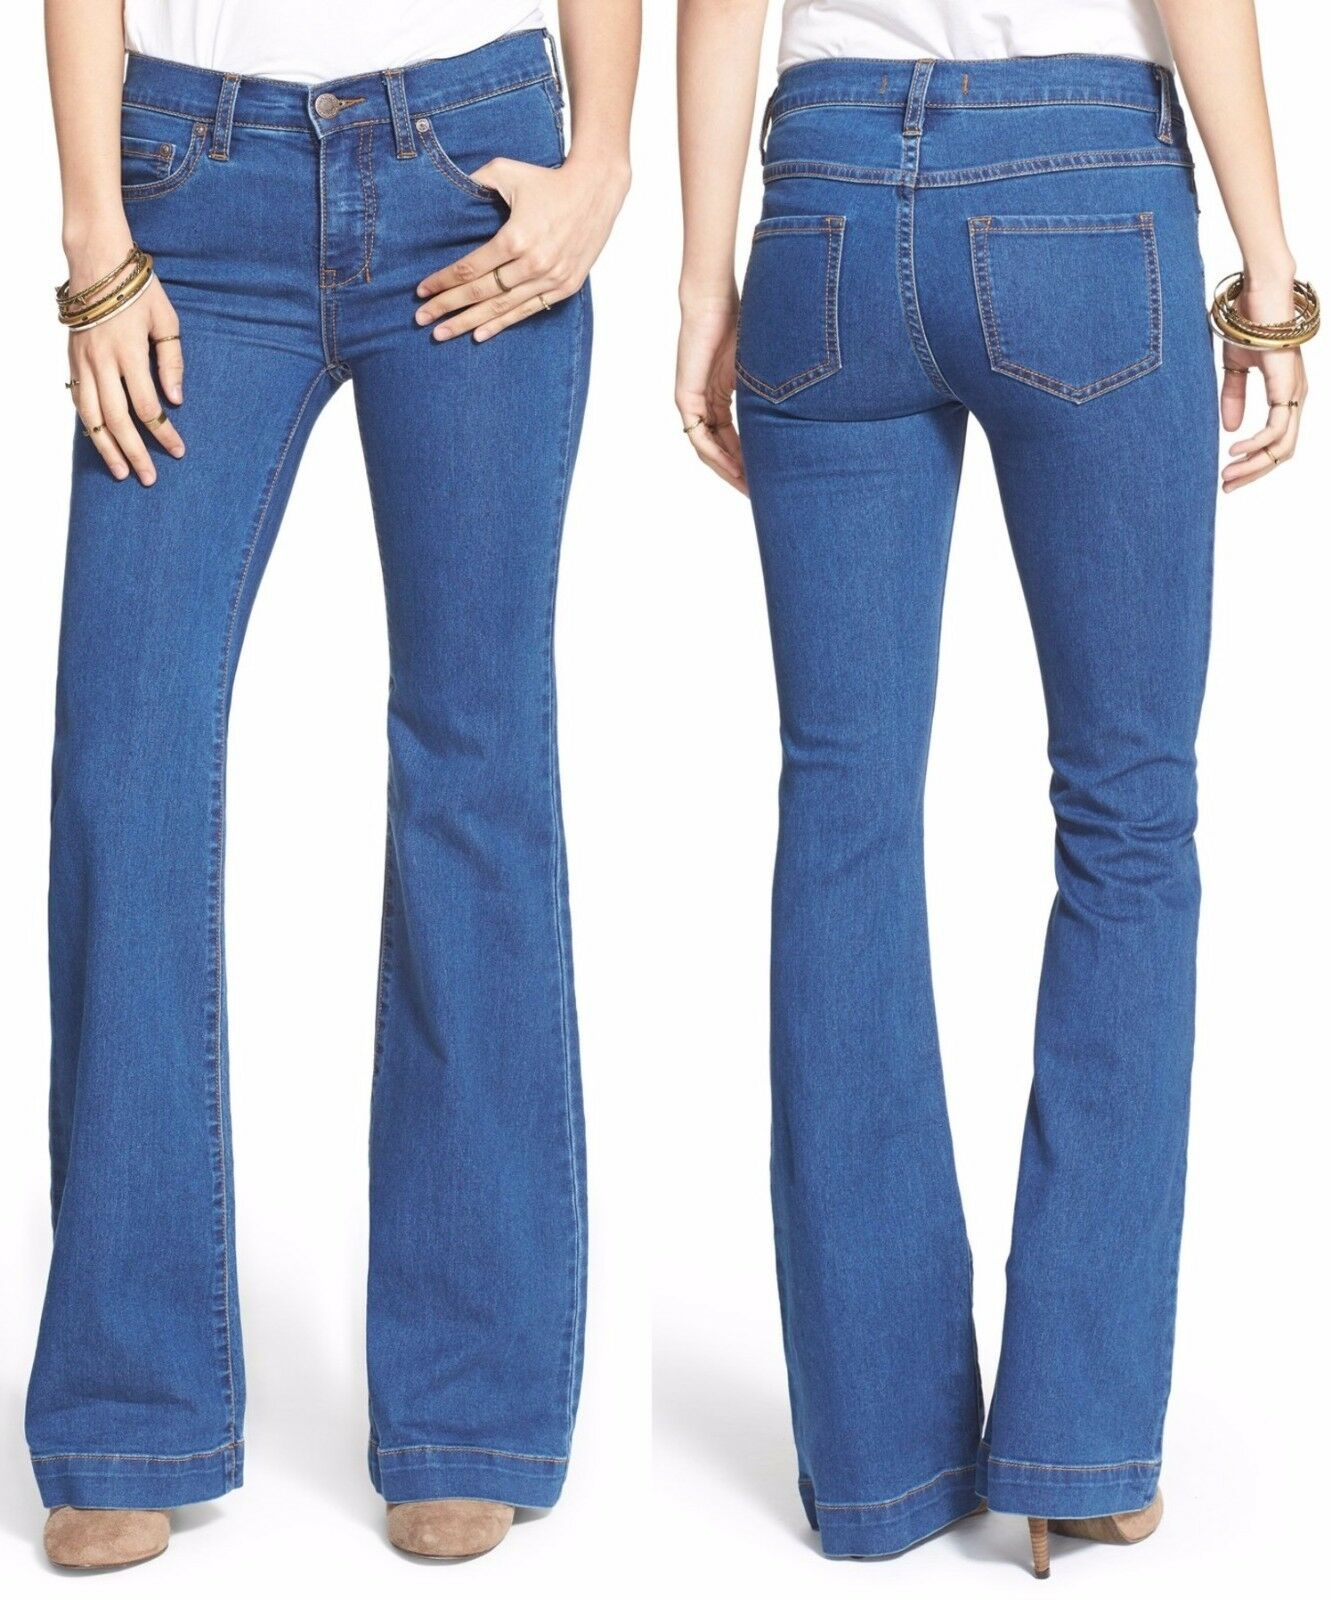 Free People OB412721 Dallas bluee Stretch Mid Rise Vintage Flare Jeans